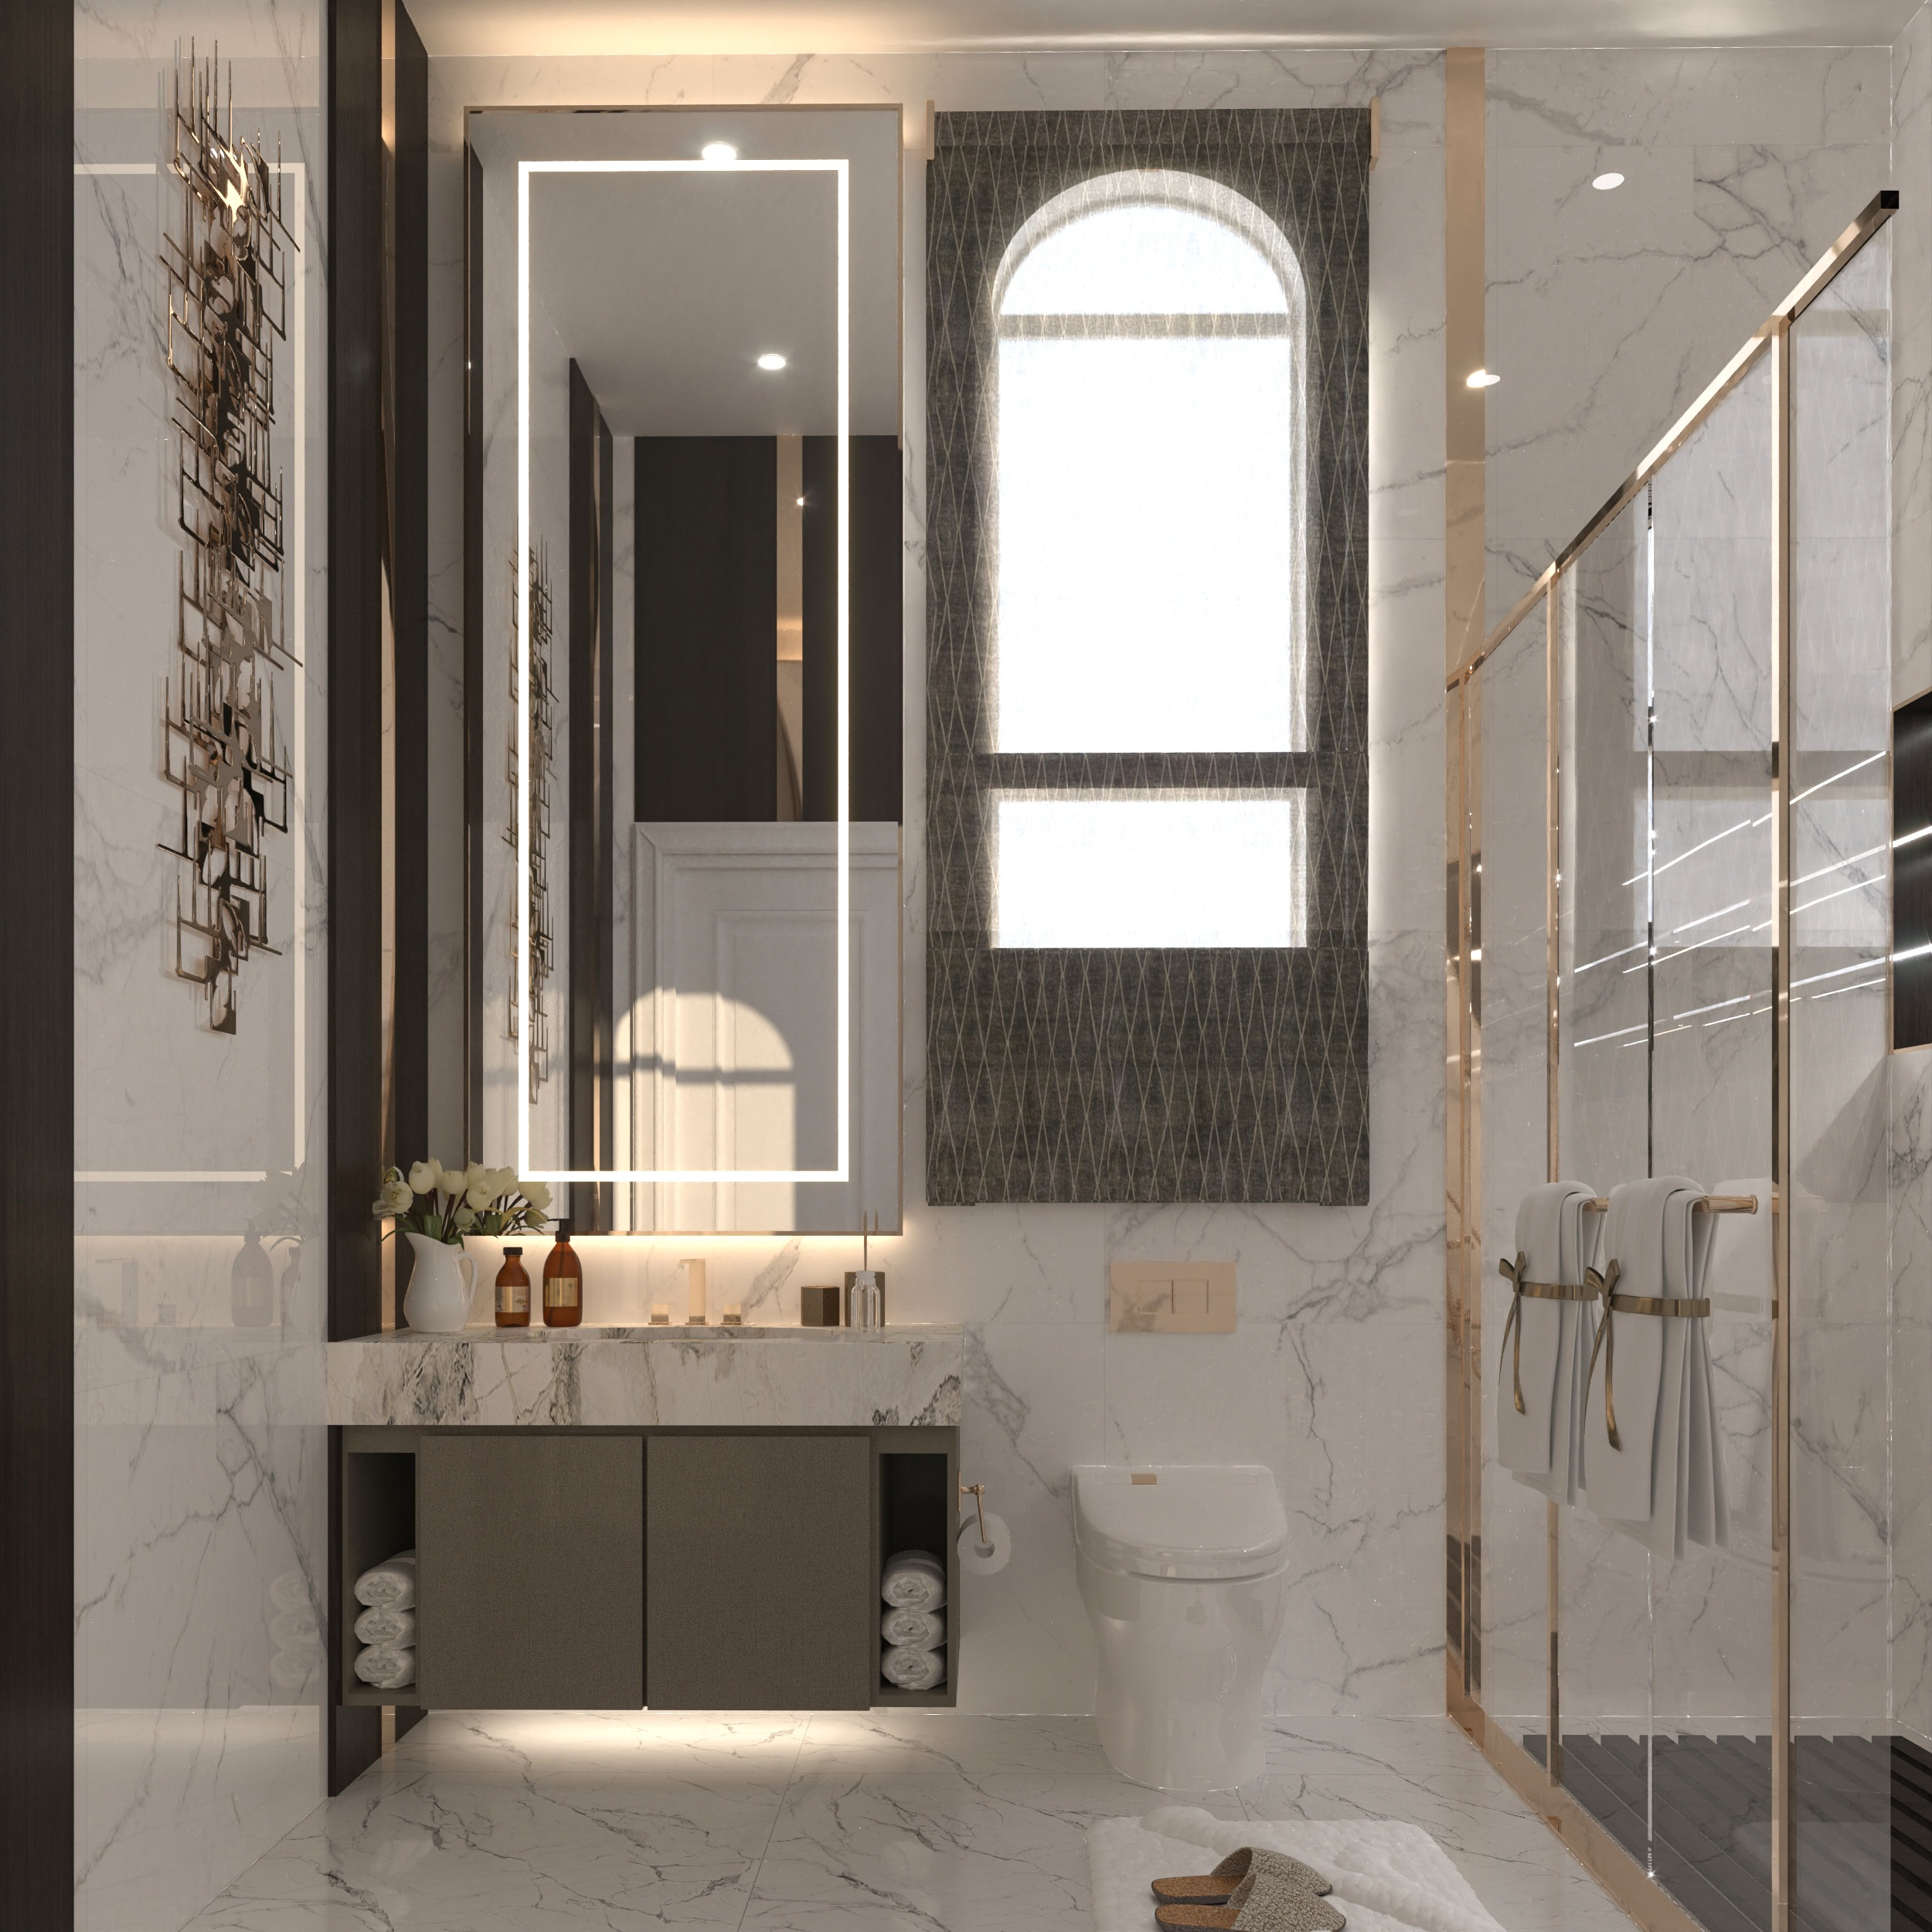 GOLDEN ACCESSORIES - TALL MIRROR - LIGHT IN THE MIRROR -WELL DESIGNED BATHROOMS